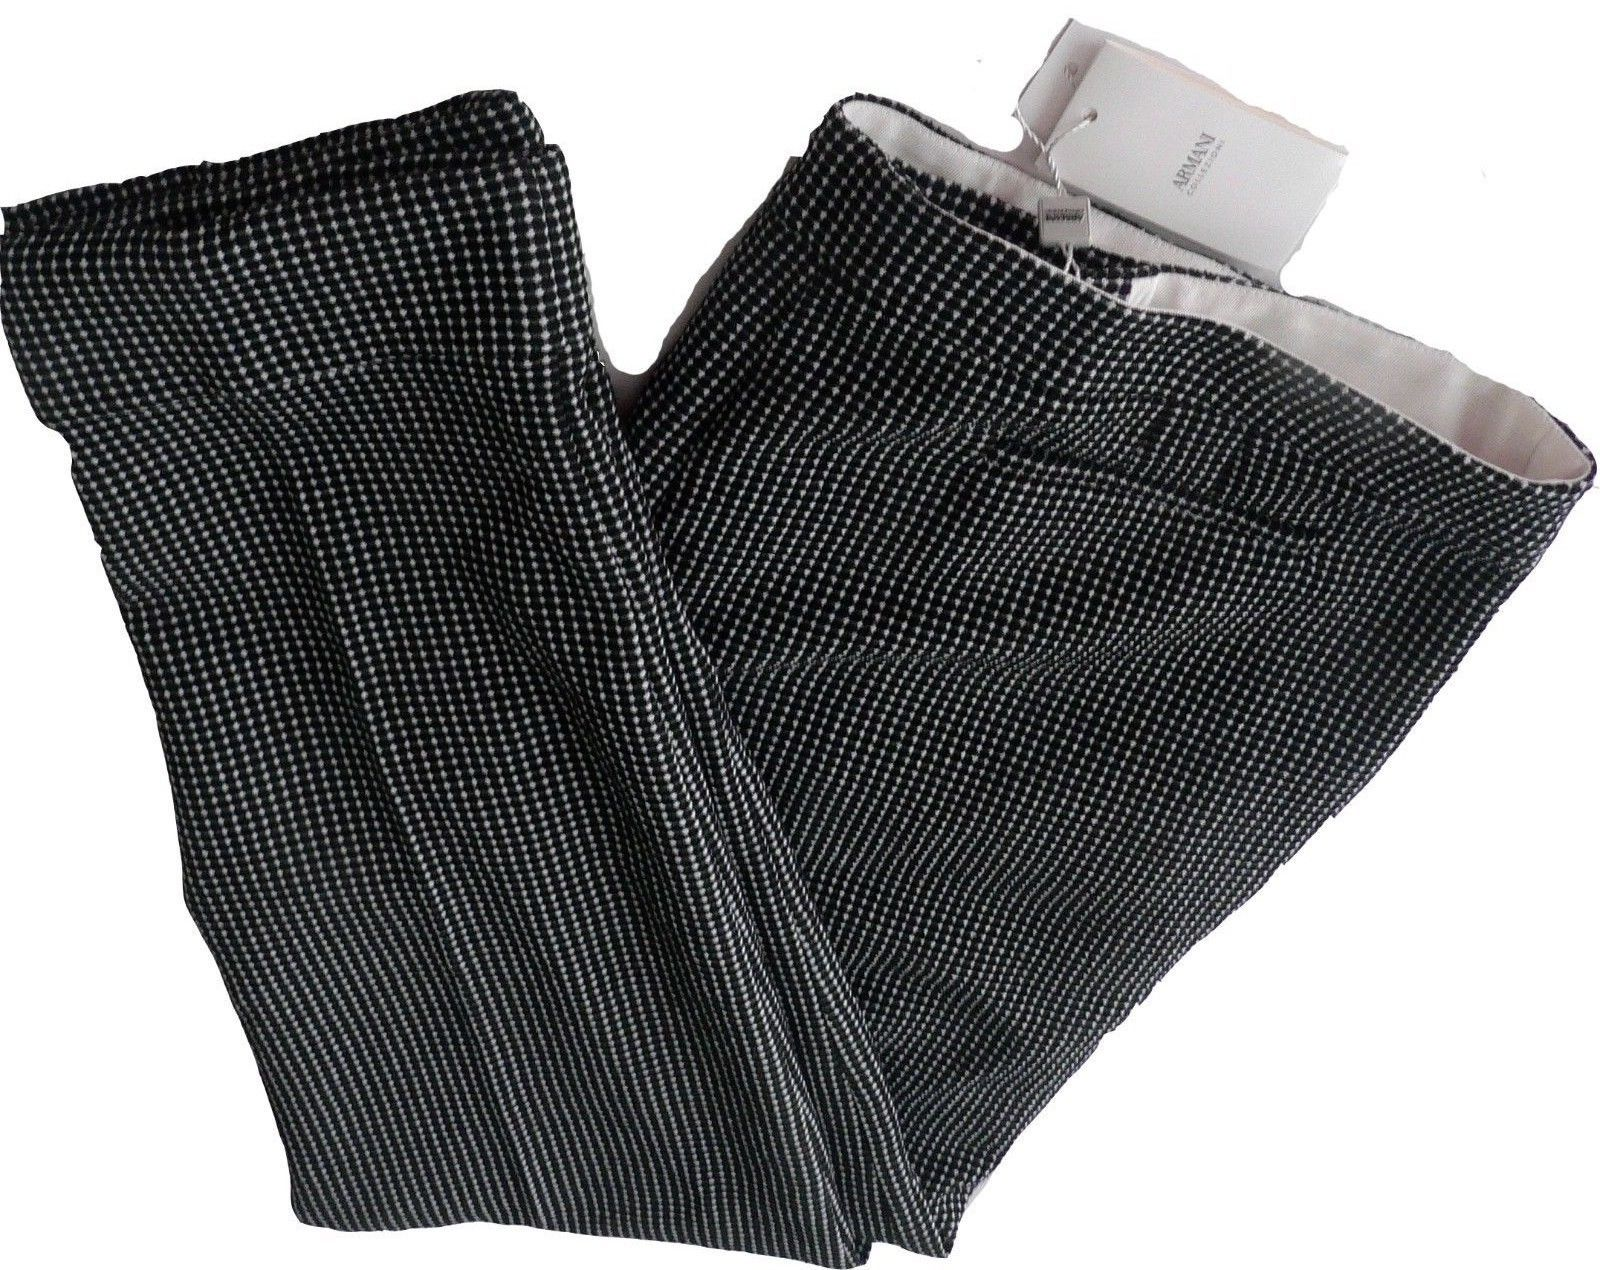 Primary image for NWT ARMANI COLLEZIONI 52/16 pants trousers slacks black/white heavyweight career